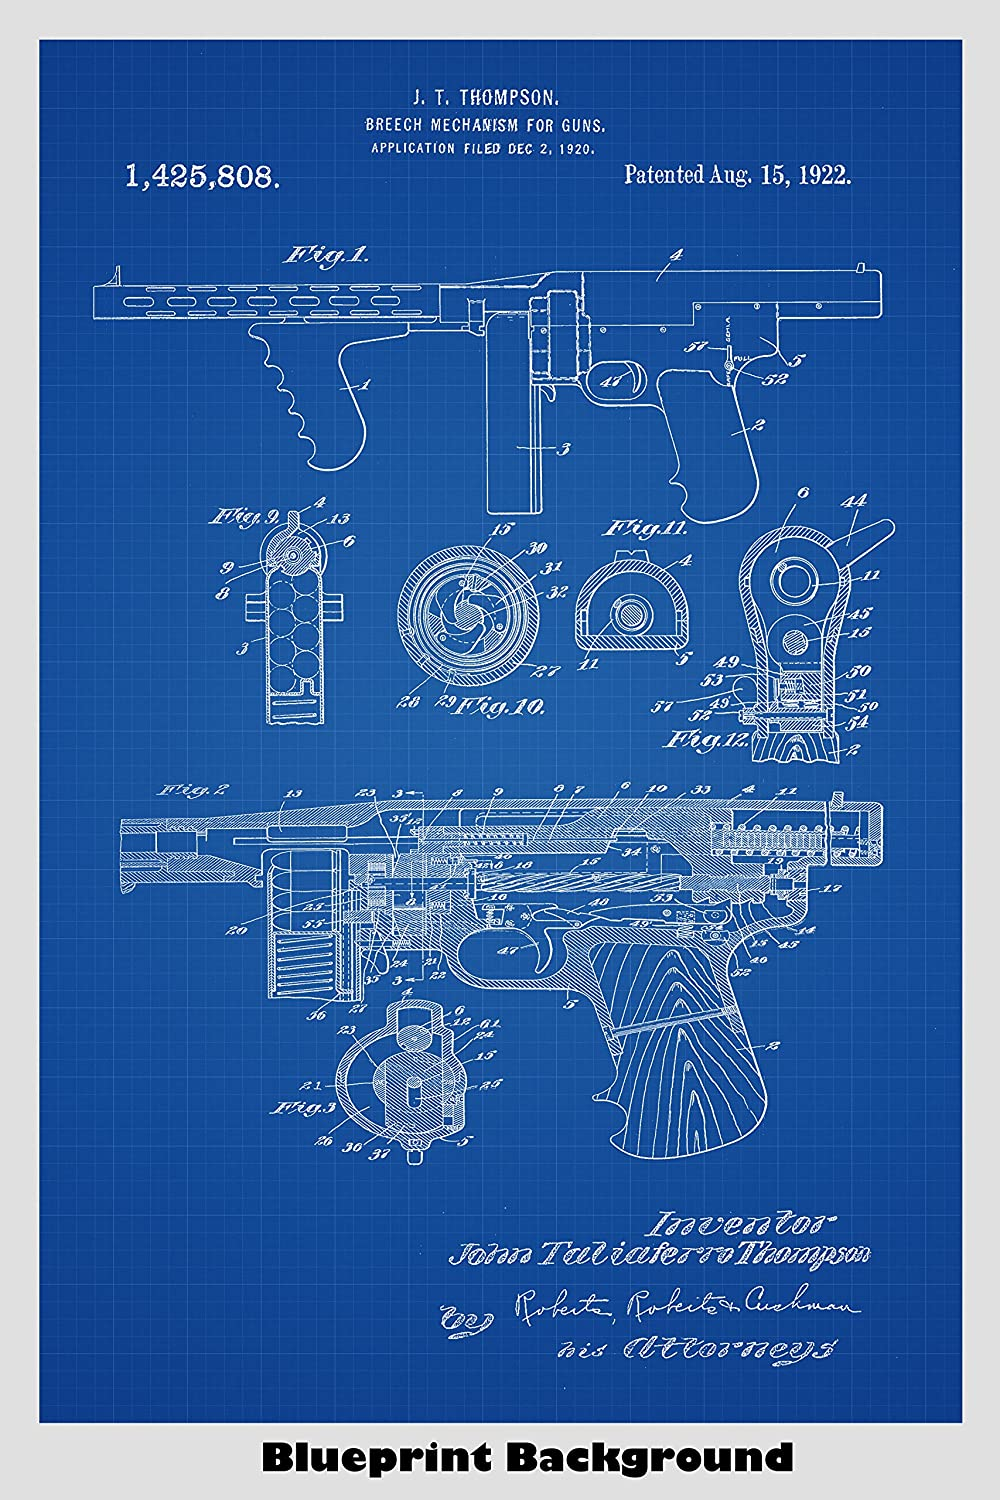 Amazon tommy gun thompson submachine gun patent print art amazon tommy gun thompson submachine gun patent print art poster choose from multiple size and background color options handmade malvernweather Image collections